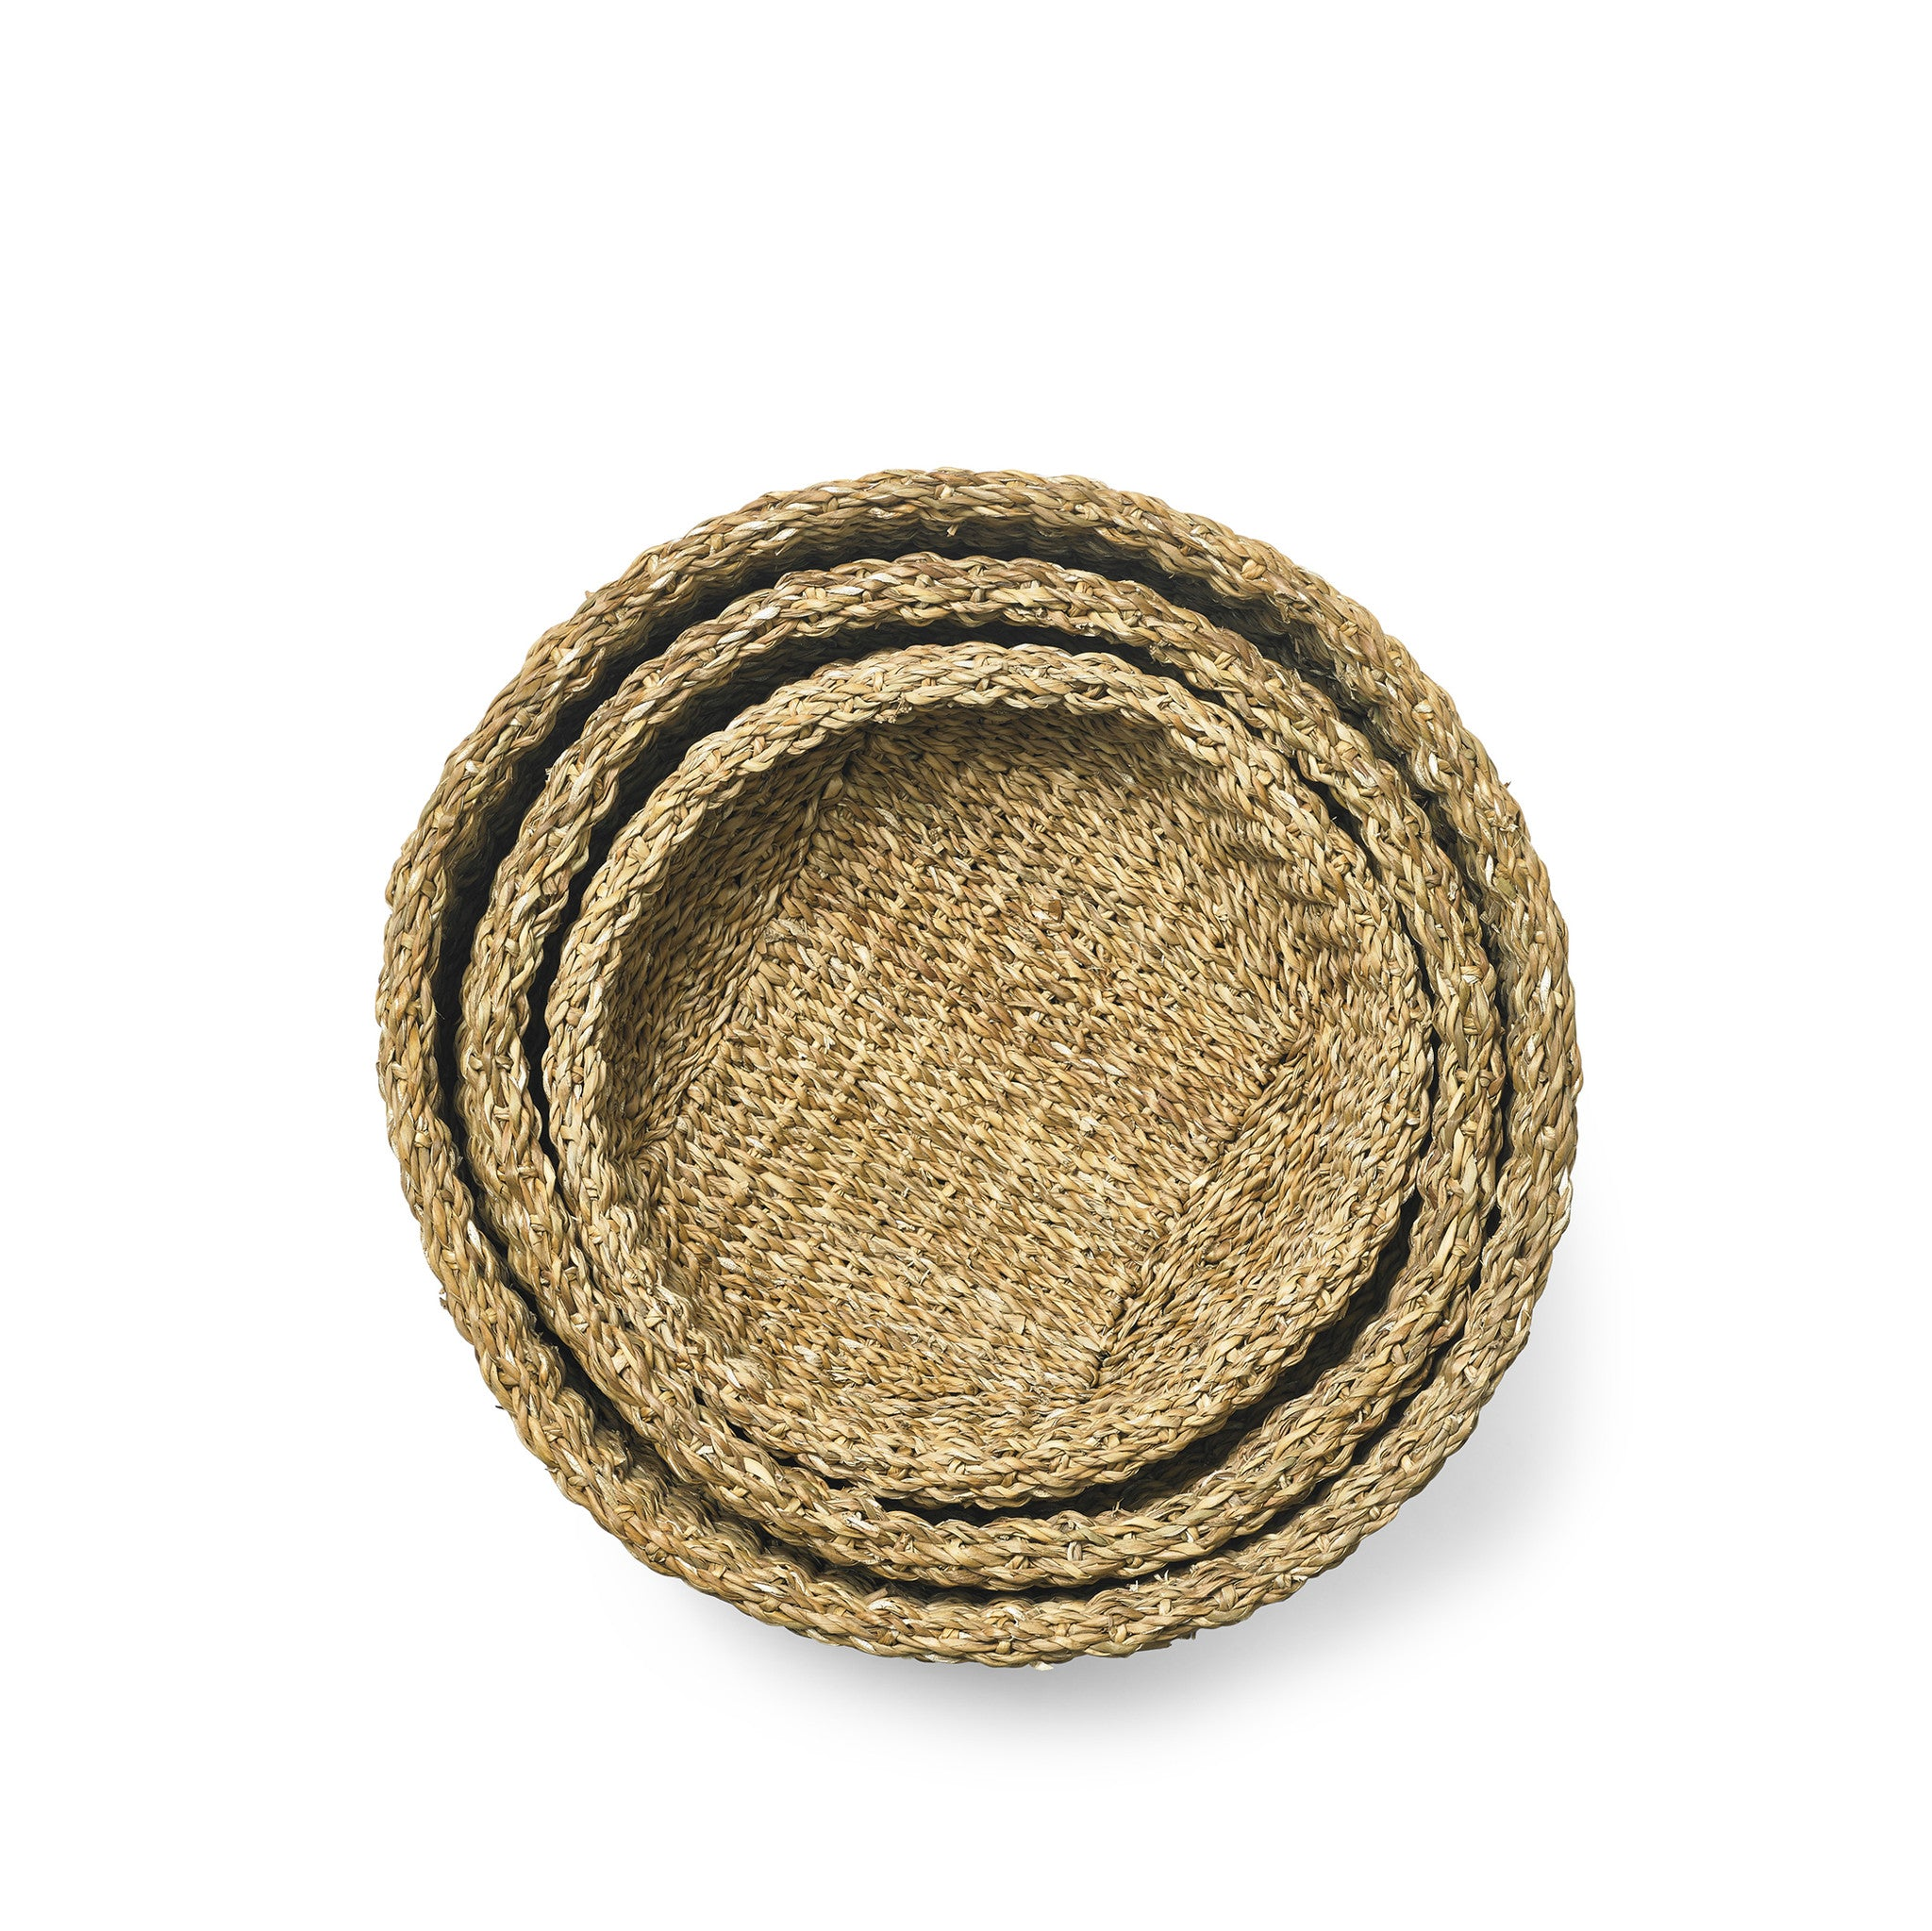 Seagrass and Coconut Fibre Basket, Small